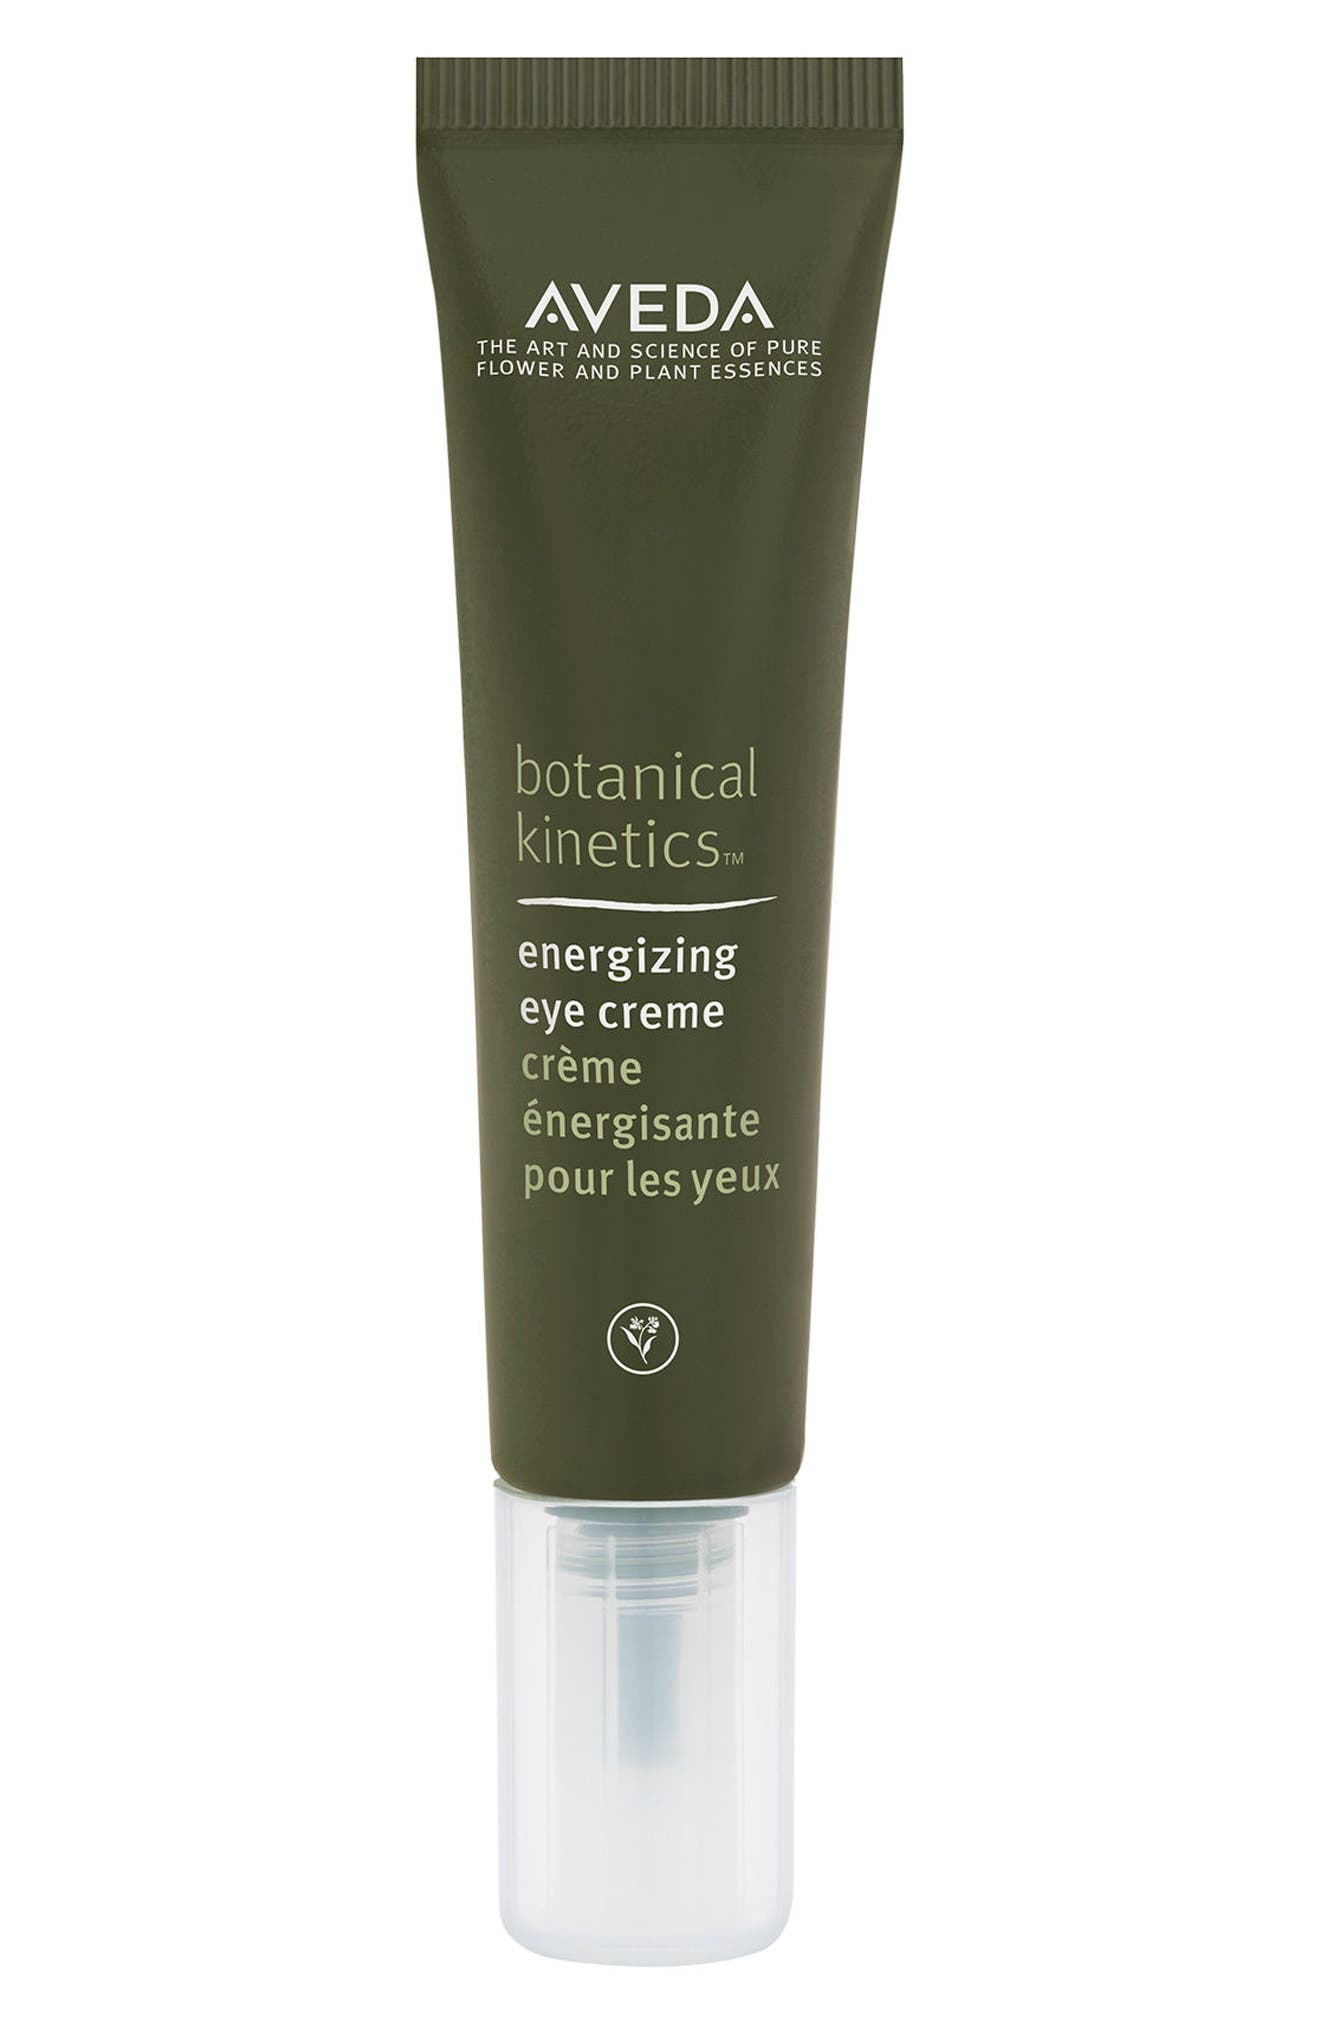 Aveda 'botanical kinetics™' Energizing Eye Crème